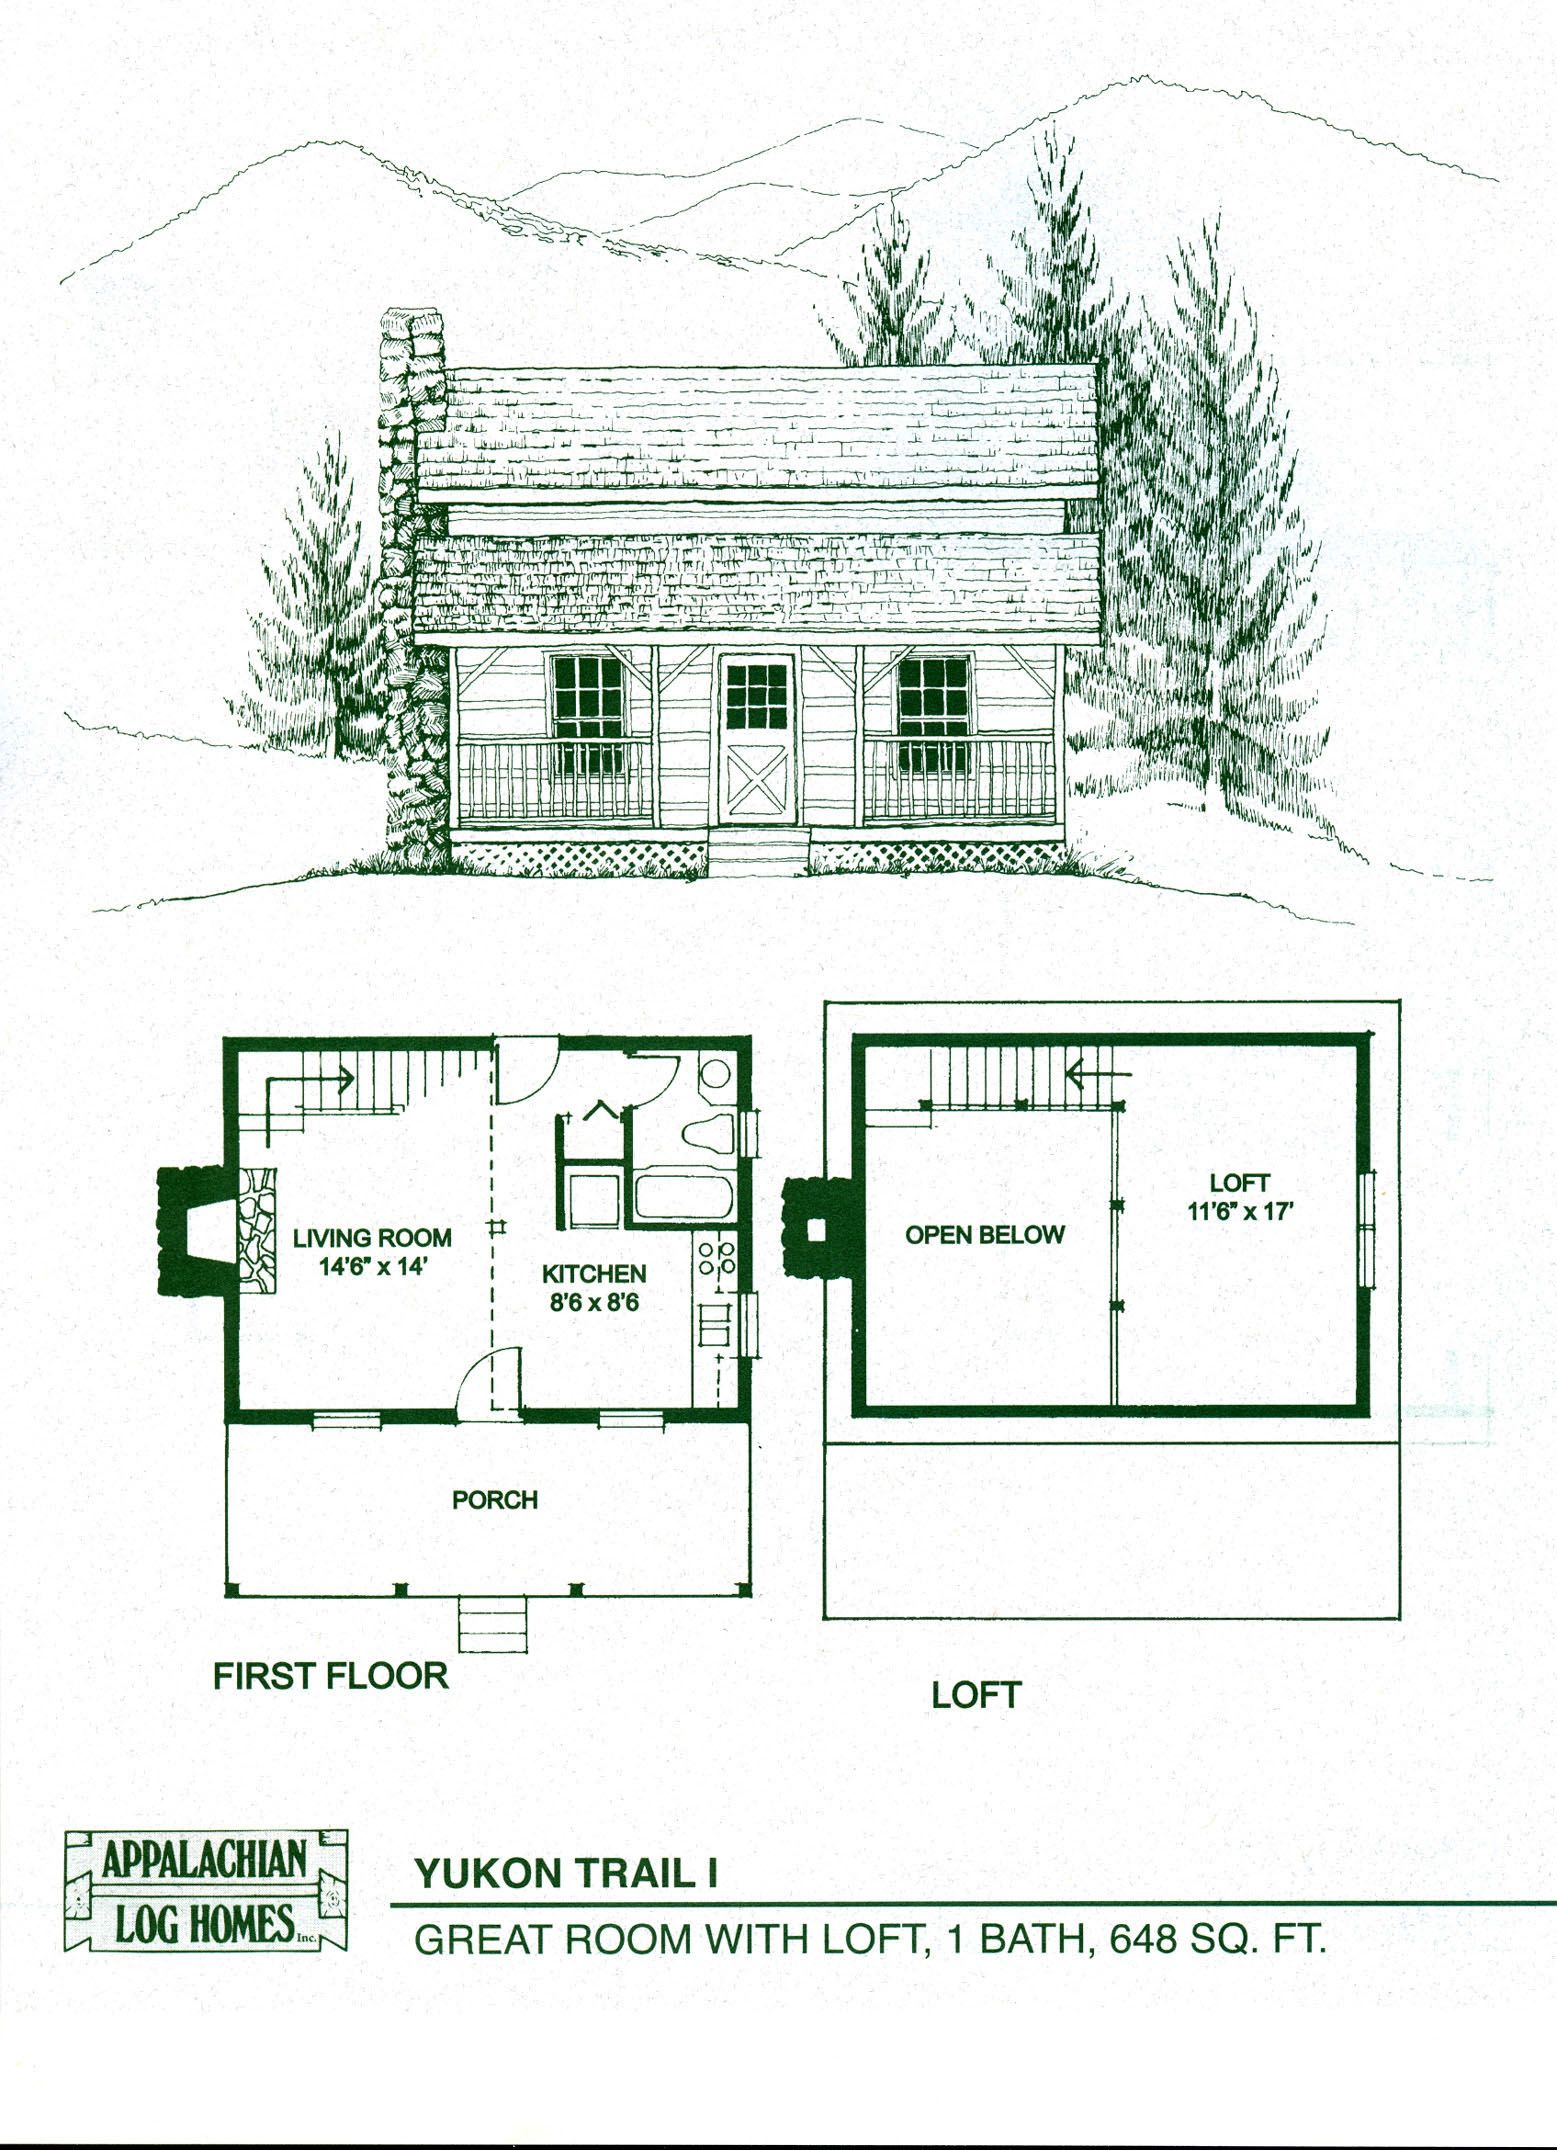 Fantastic Log Home Floor Plans Log Cabin Kits Appalachian Log Homes Largest Home Design Picture Inspirations Pitcheantrous